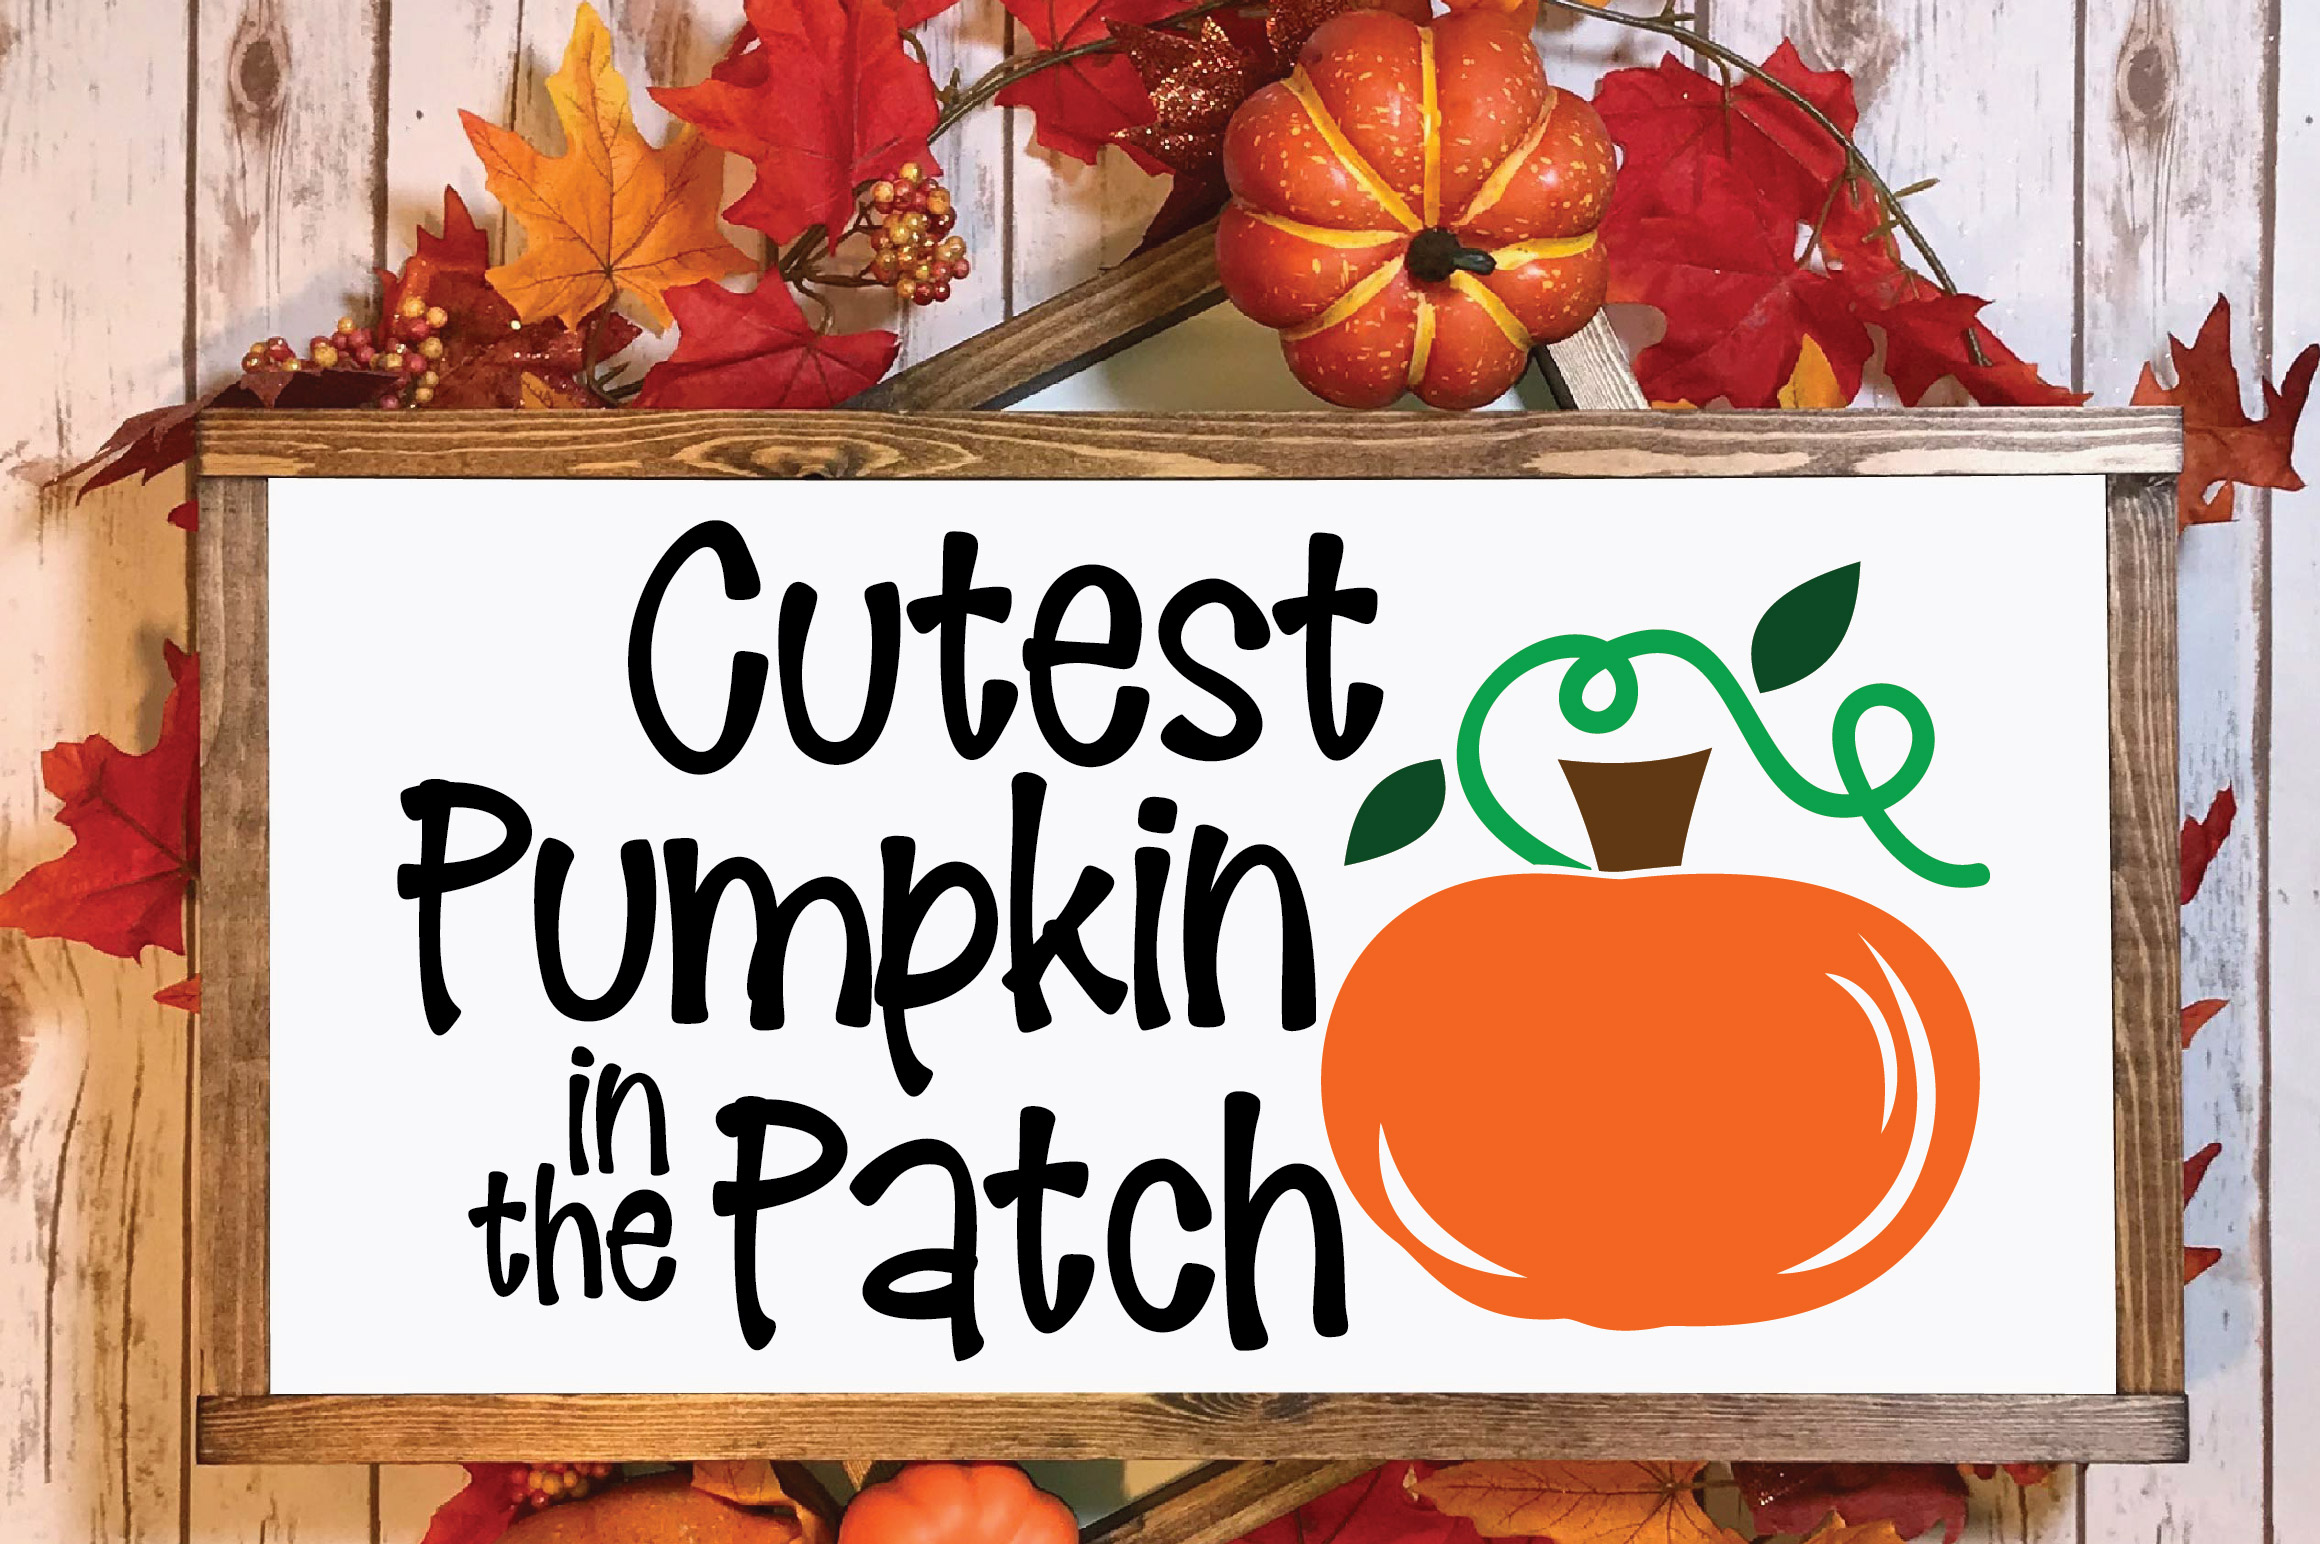 Cutest Pumpkin in the Patch SVG Cut File - Fall Pumpkin SVG example image 2